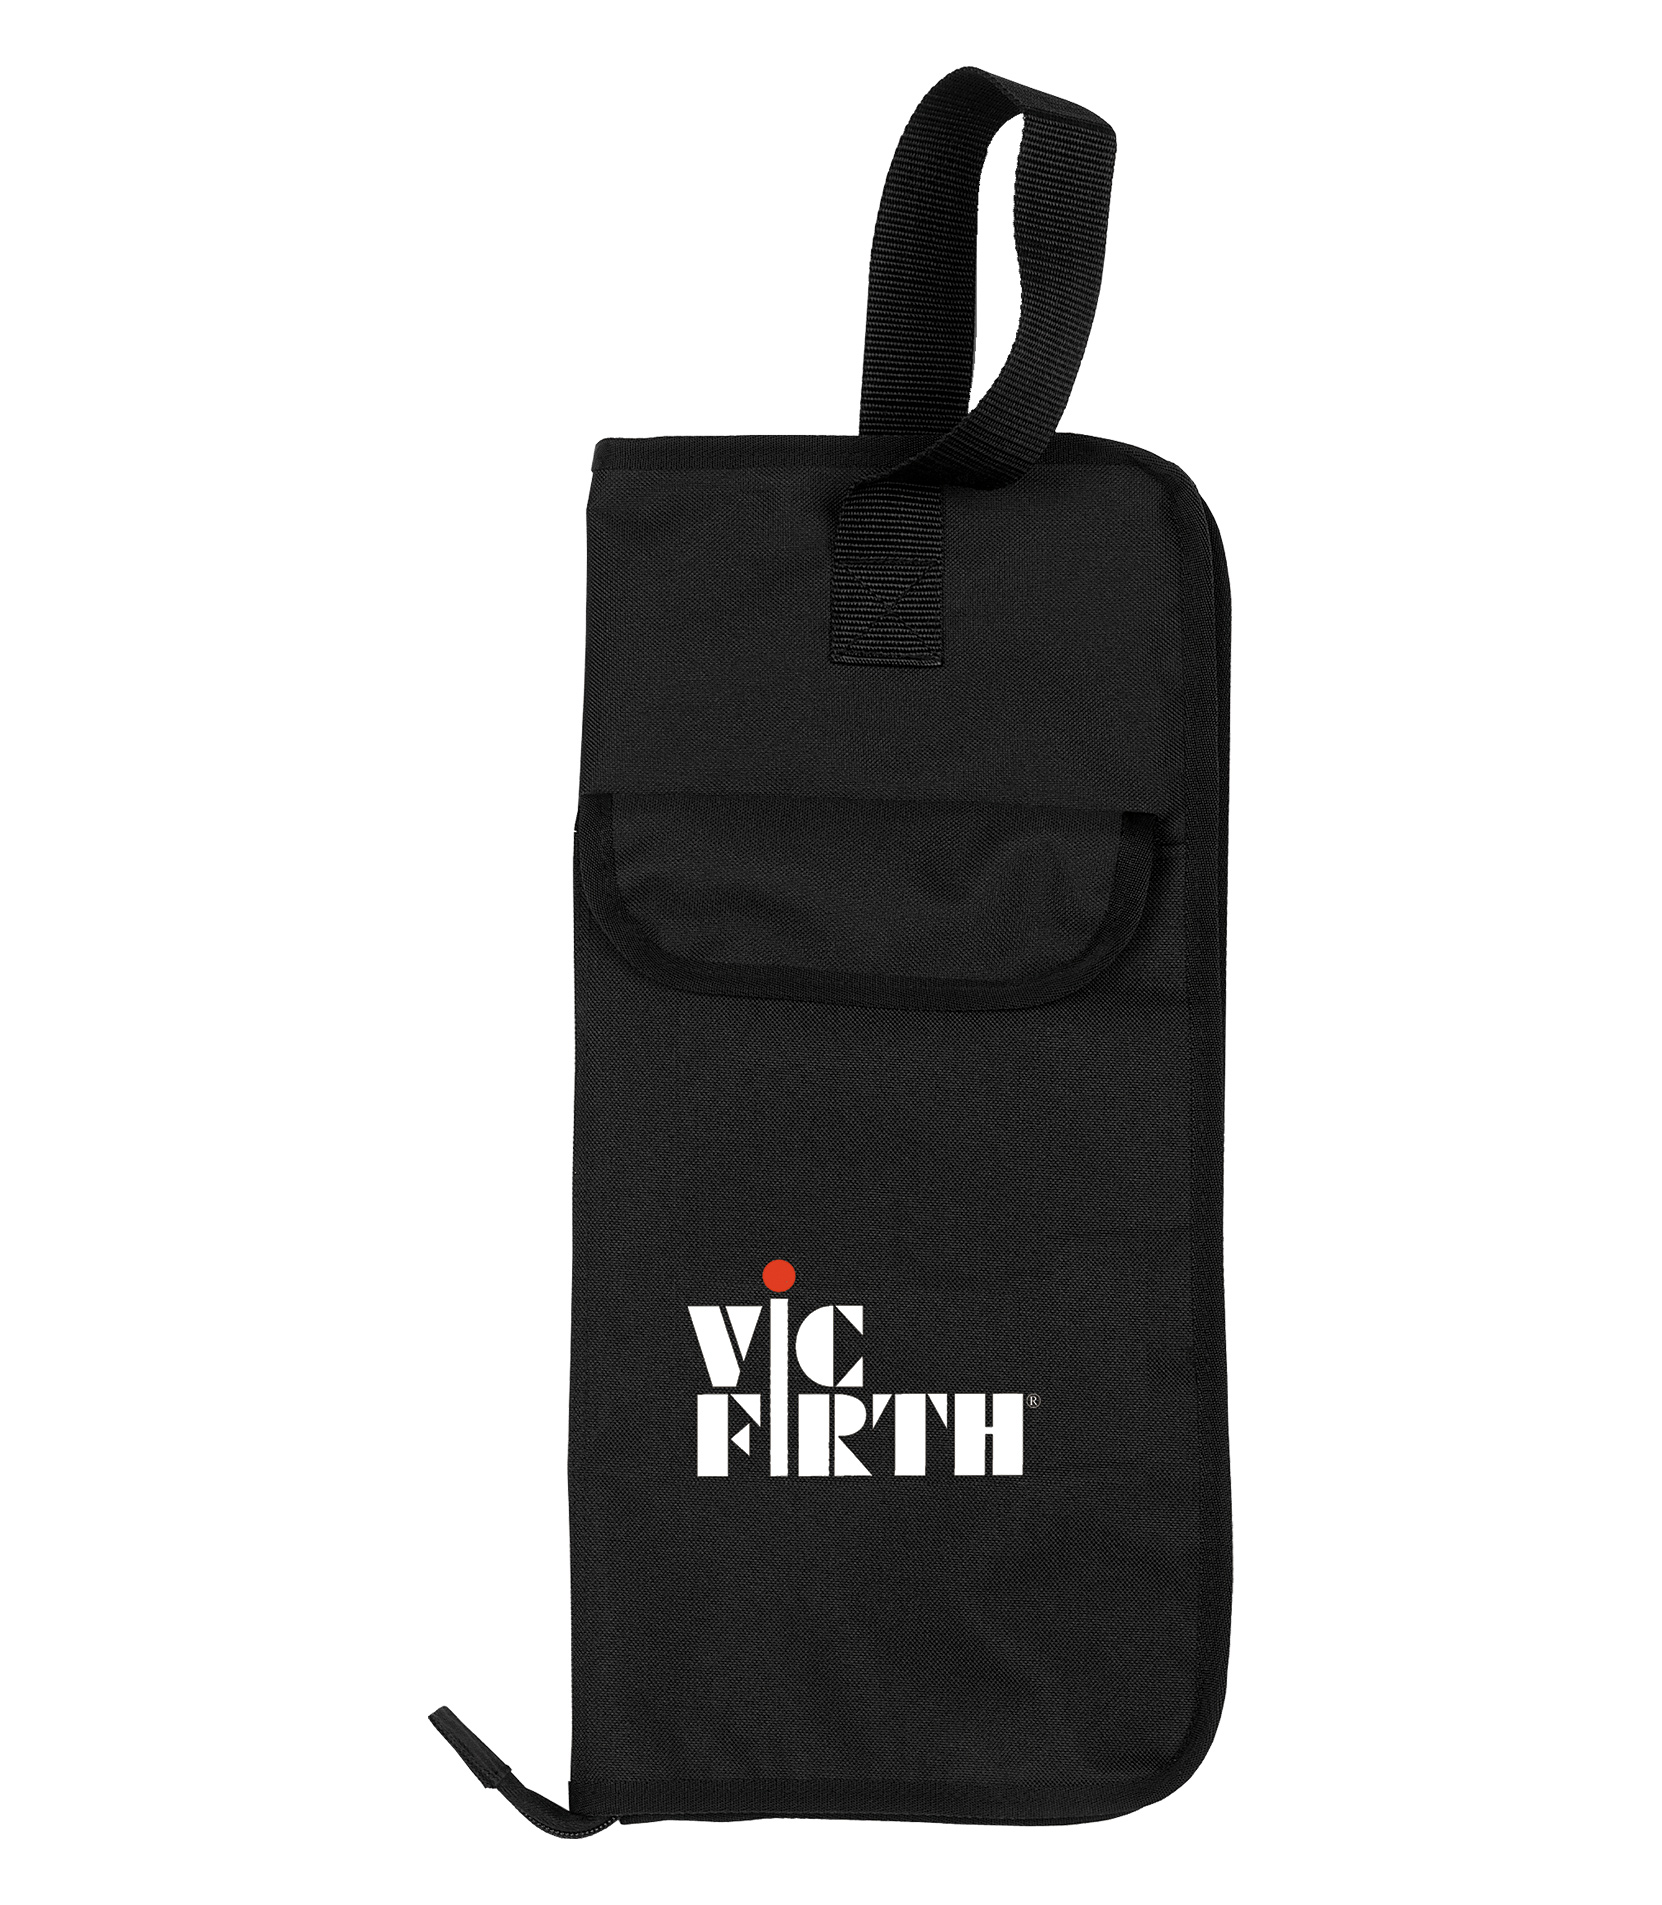 Vicfirth - Basic Stick Bag